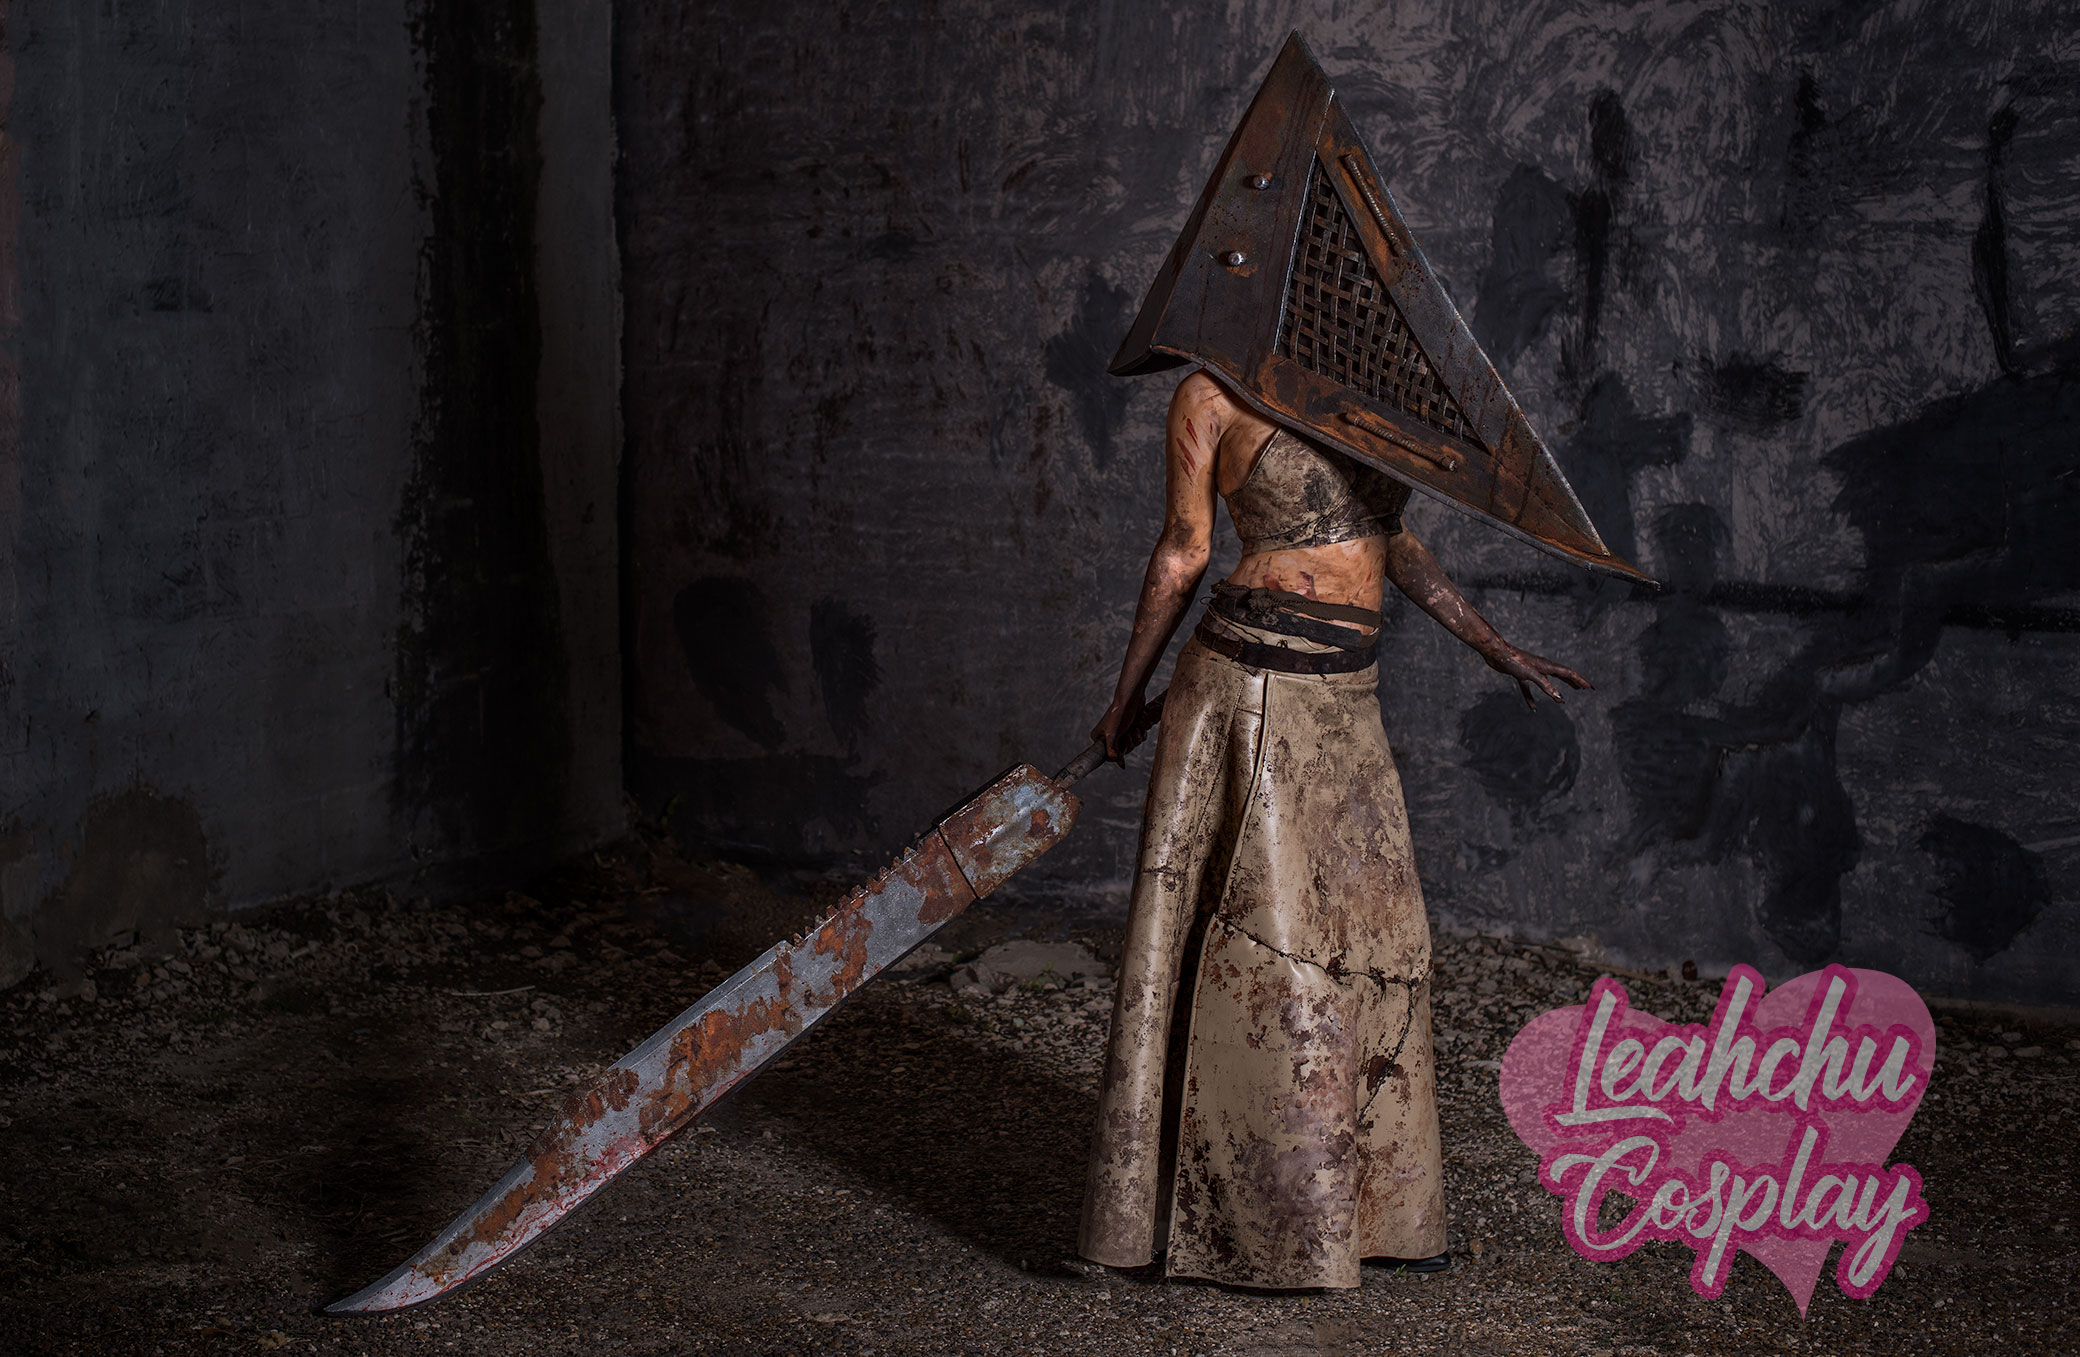 Pyramid Head Silent Hill Cosplay Print Sold By Leahchu Cosplay